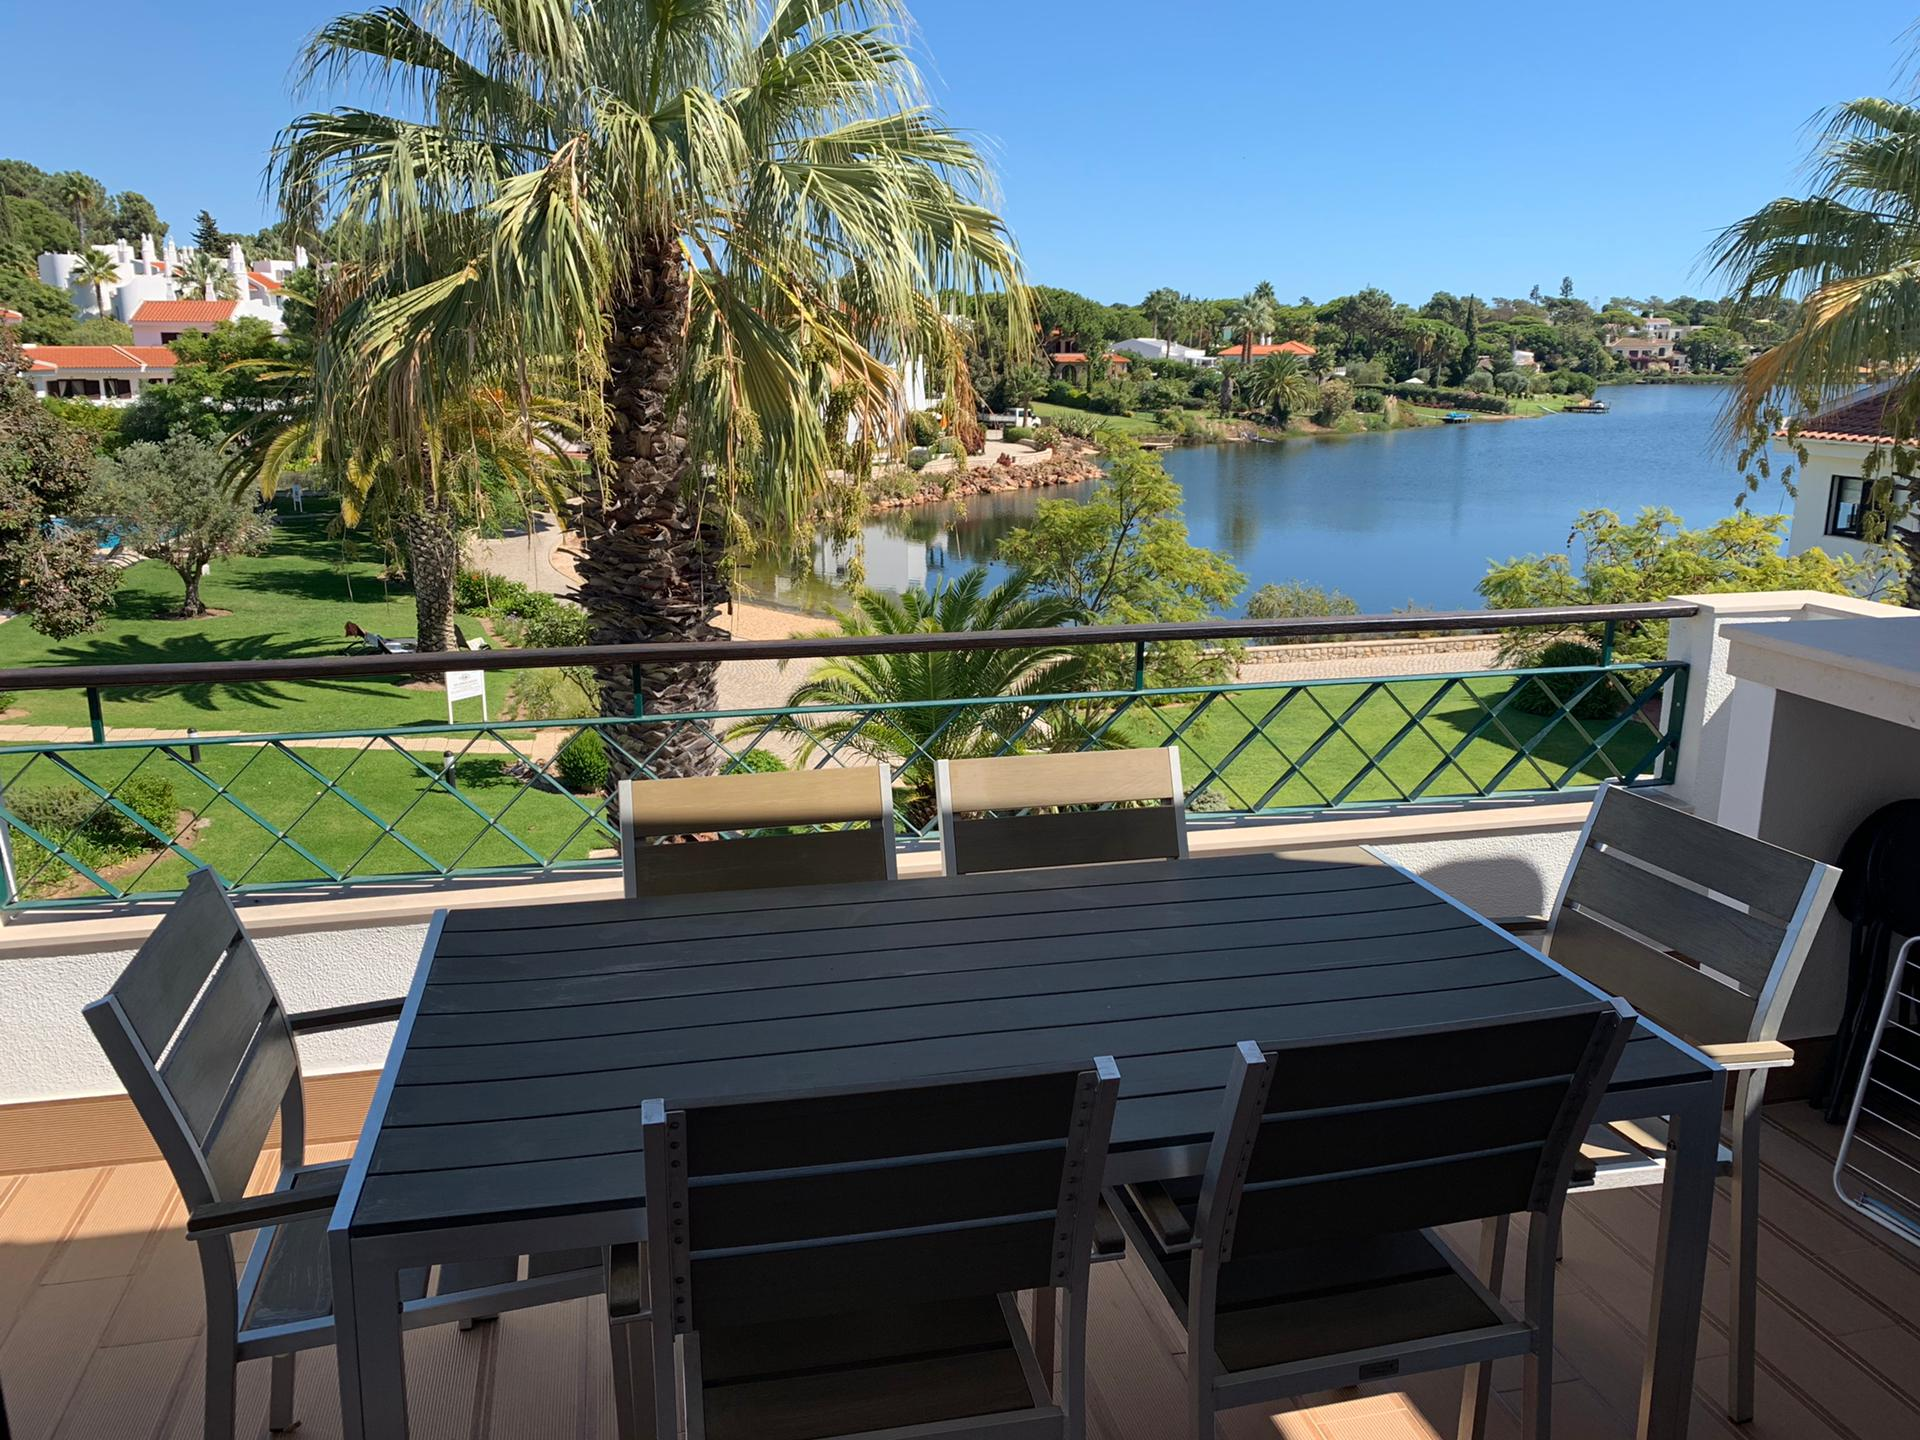 Long Term Rental Luxury T2 Apartment on the Lake of Quinta do Lago